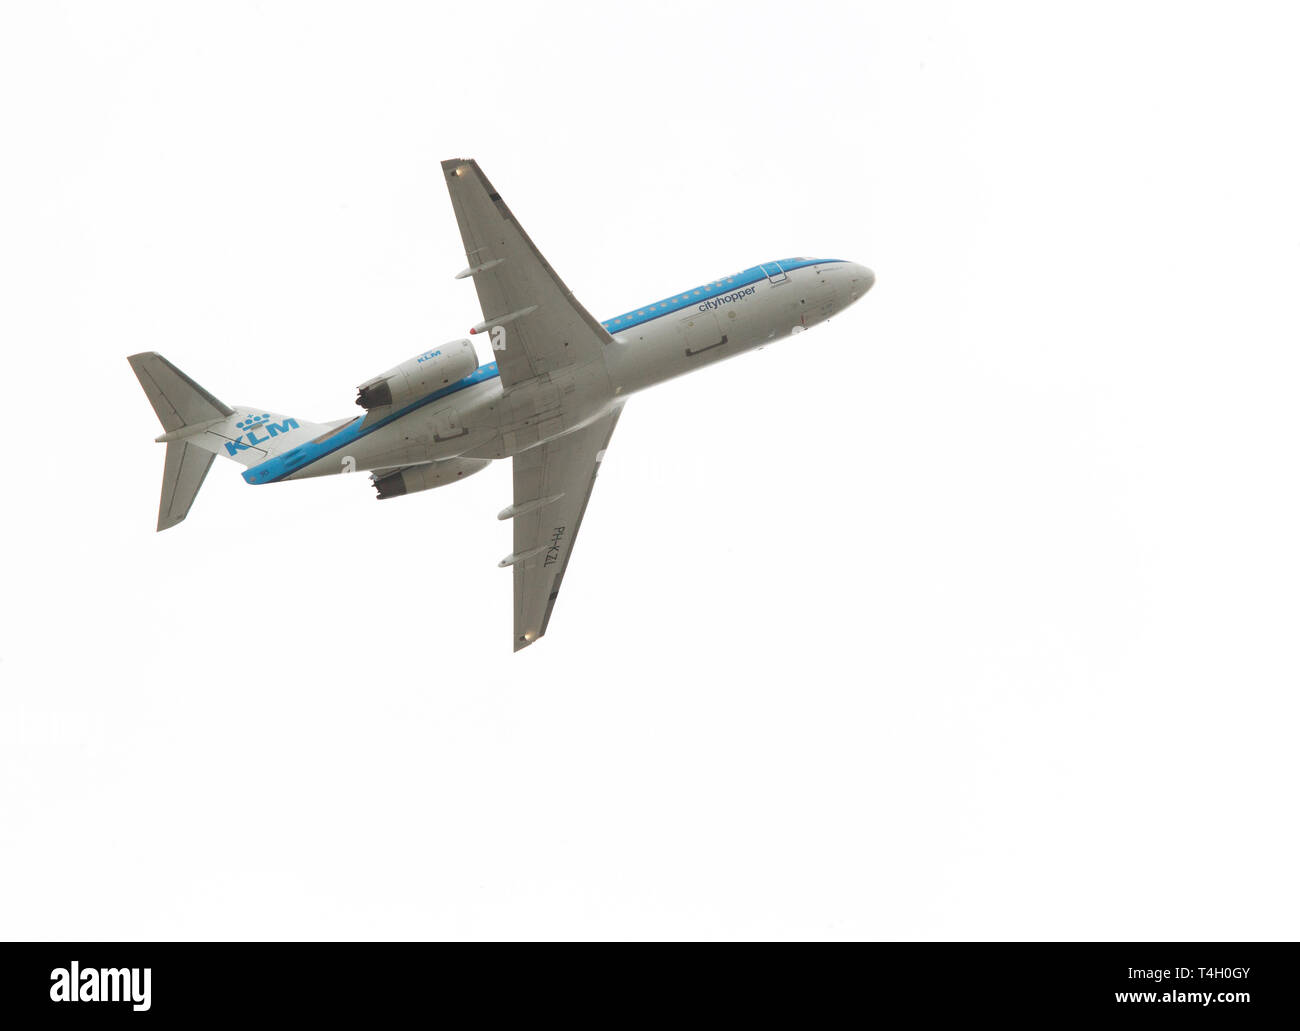 Aircraft from the airline KLM designated PH-KZL, which started from Linköping airport. KLM Royal Dutch Airlines, legally Koninklijke Luchtvaart Maatschappij N.V. (literal translation: Royal Aviation Company, Inc.), is the flag carrier airline of the Netherlands. - Stock Image